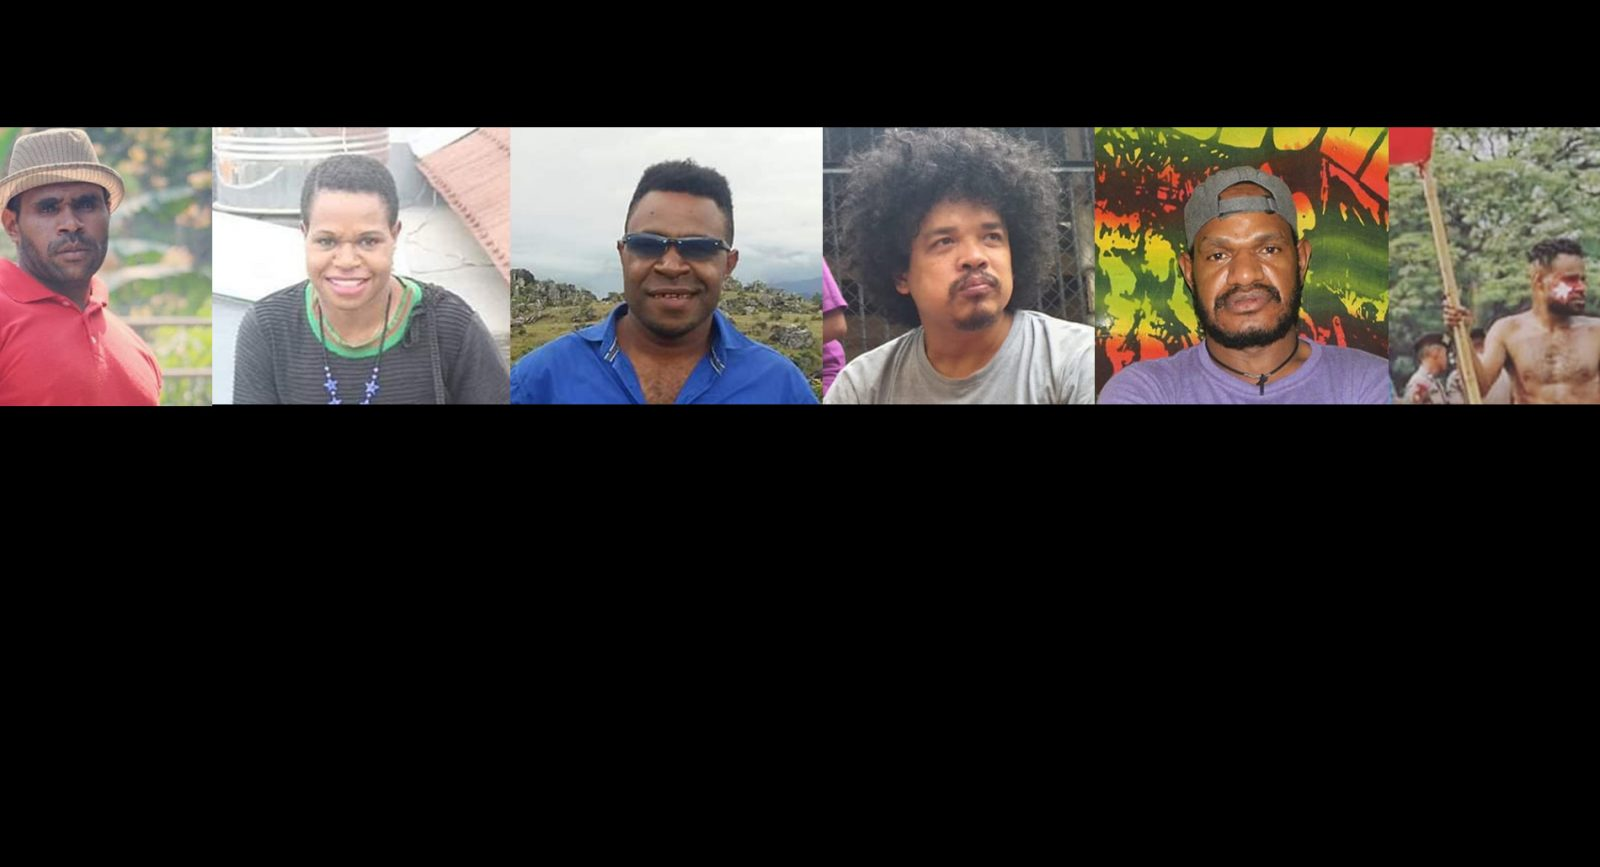 6 West Papuan activists - casual photos in a grid.